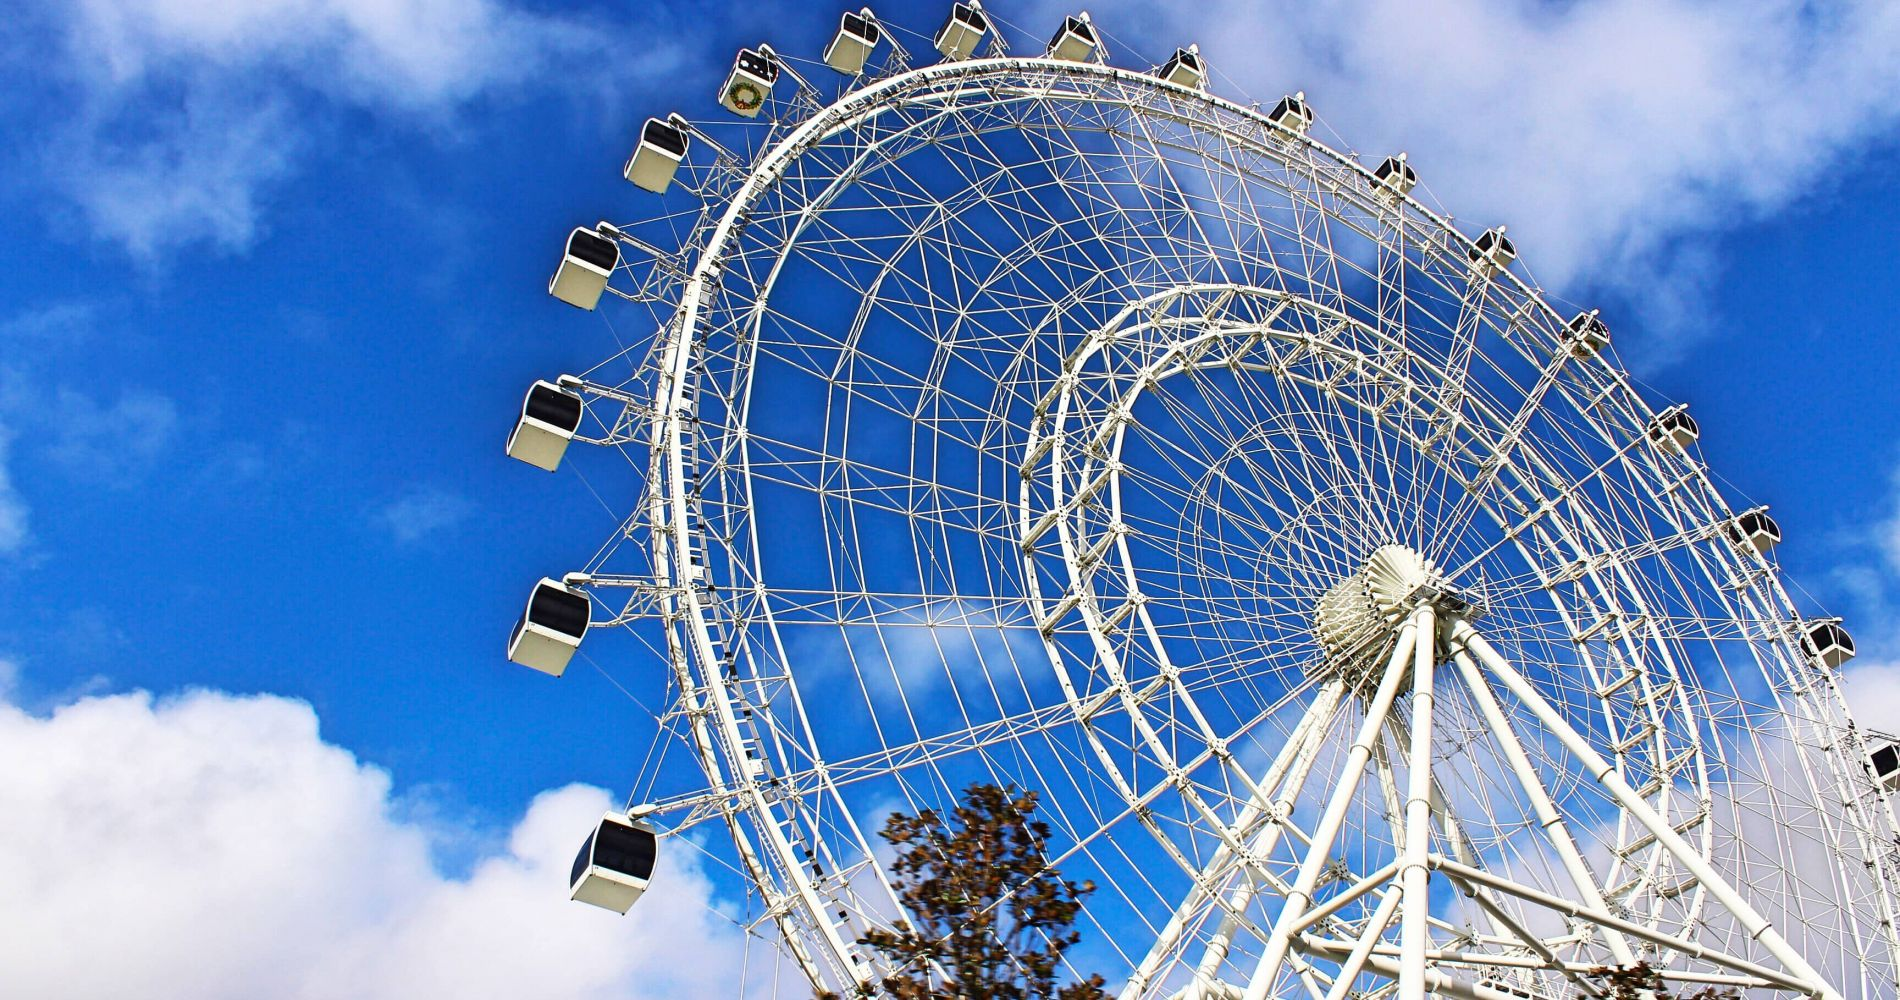 Visit The Wheel at ICON Park and other Attractions